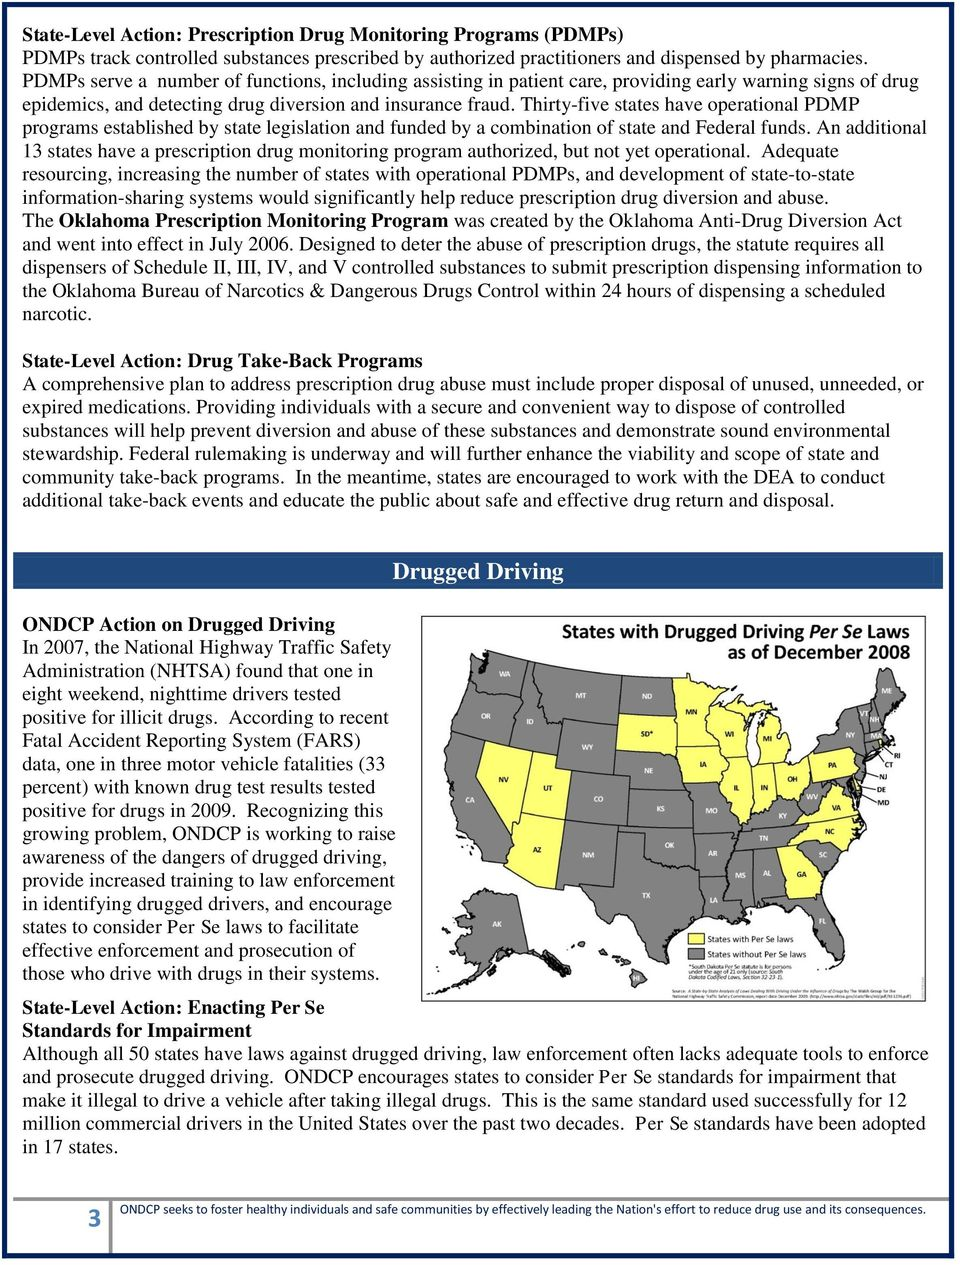 Thirty-five states have operational PDMP programs established by state legislation and funded by a combination of state and Federal funds.